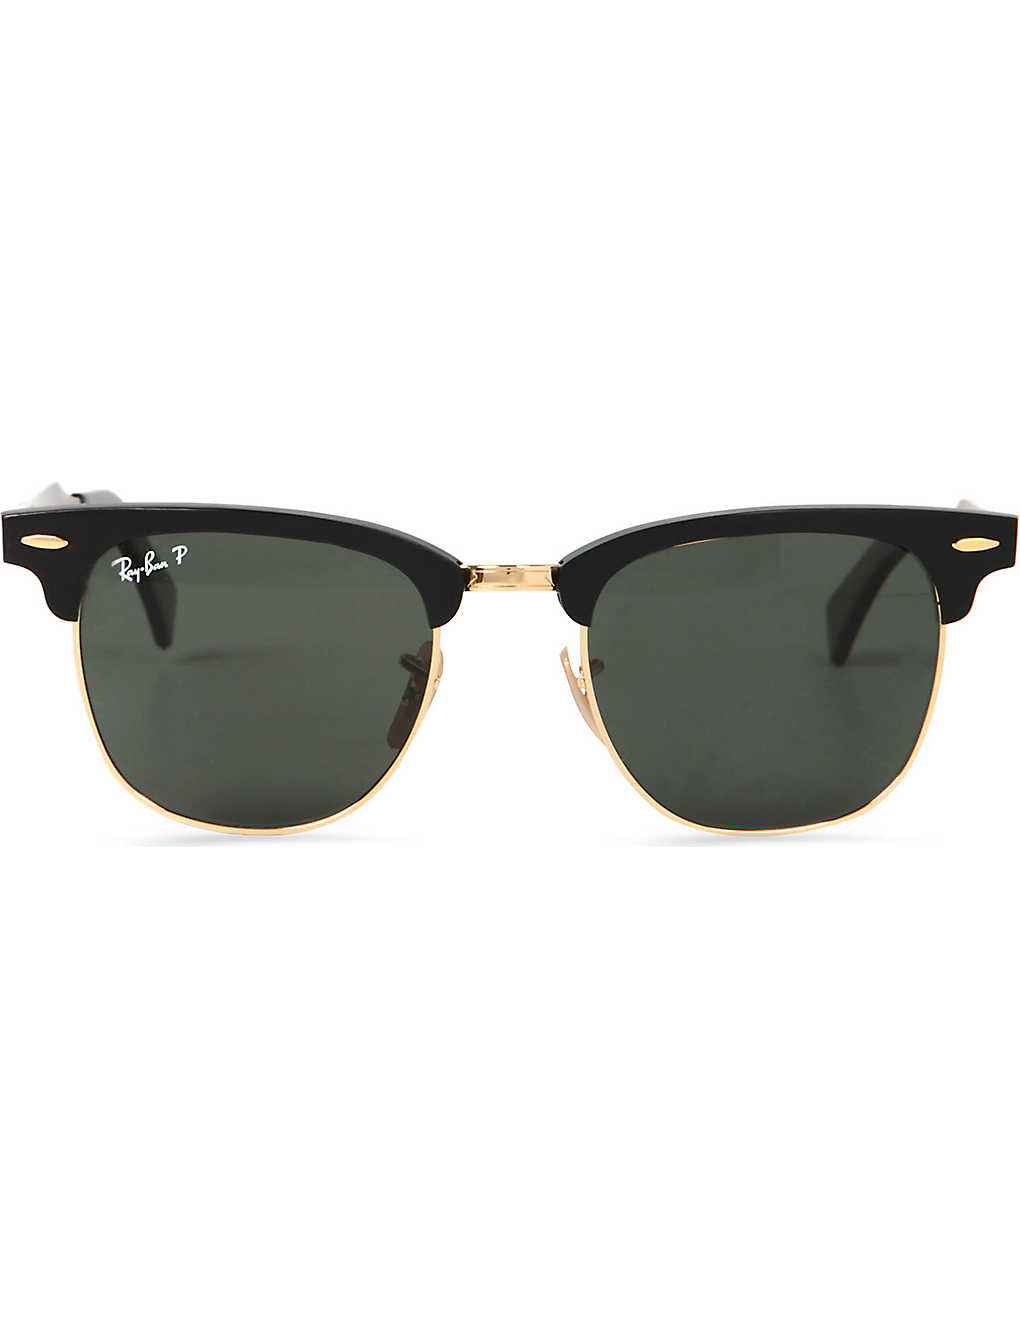 RAY-BAN: Folding clubmaster aluminium sunglasses with green lenses RB3507 51